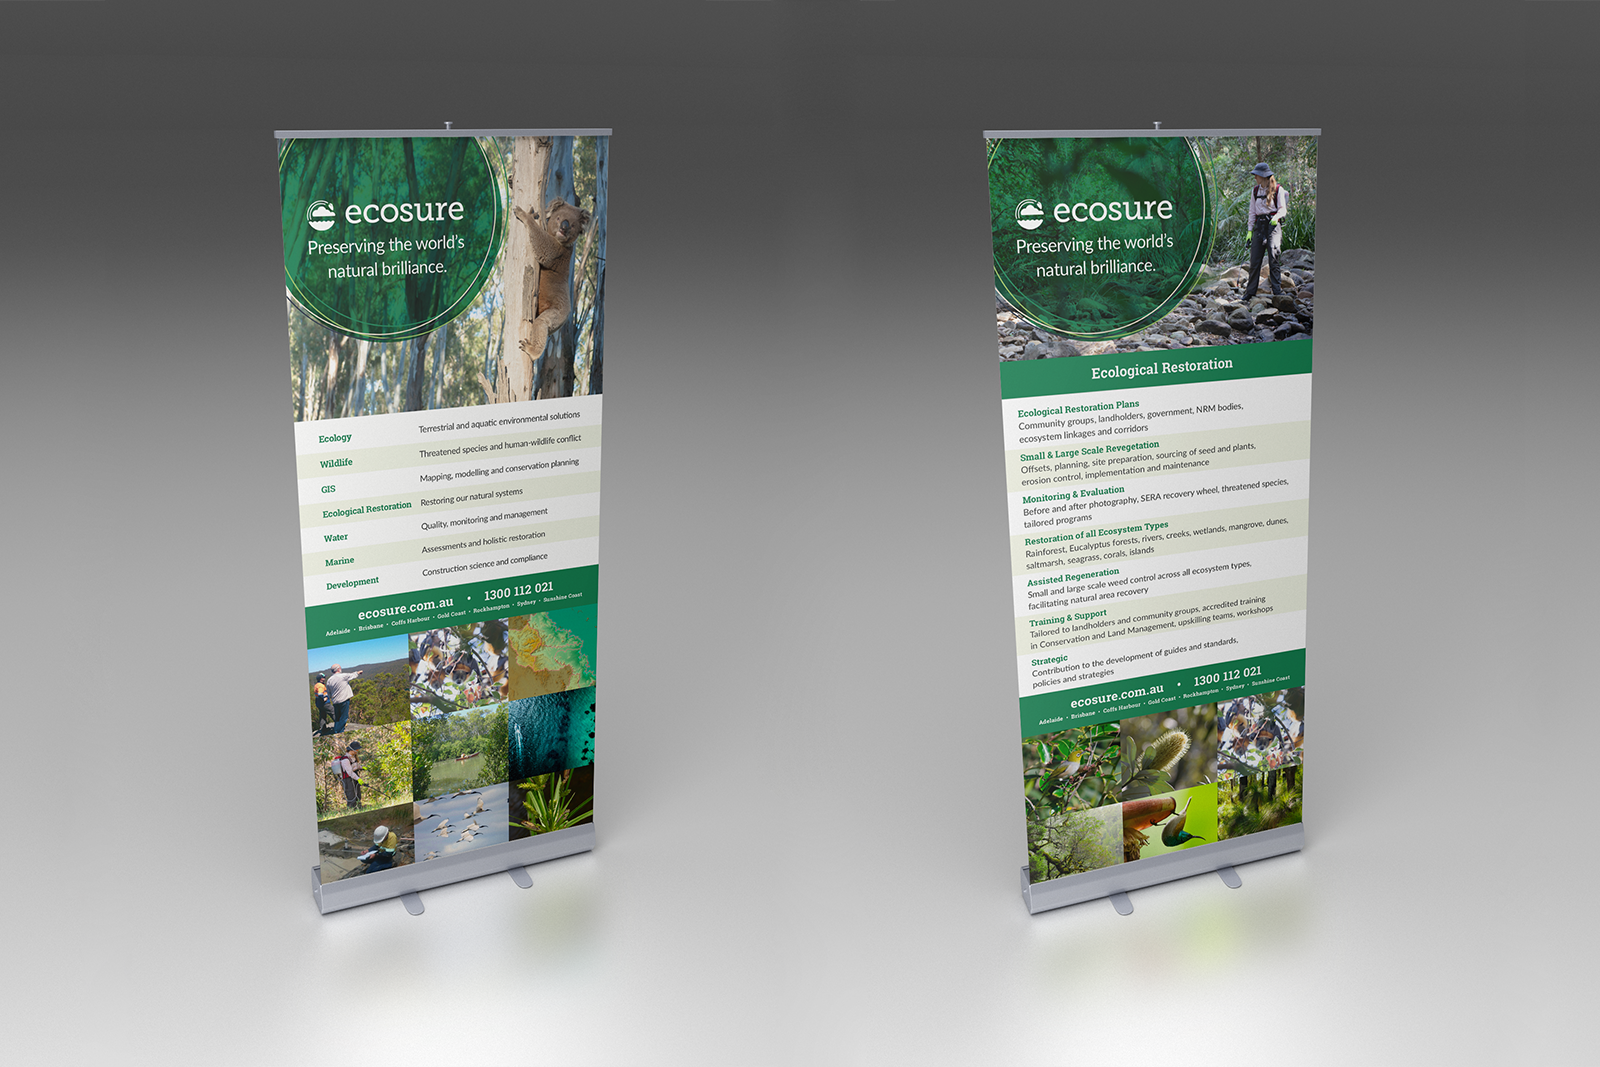 Ecosure, Ecosure Pull-up Banners, Ecosure Branding